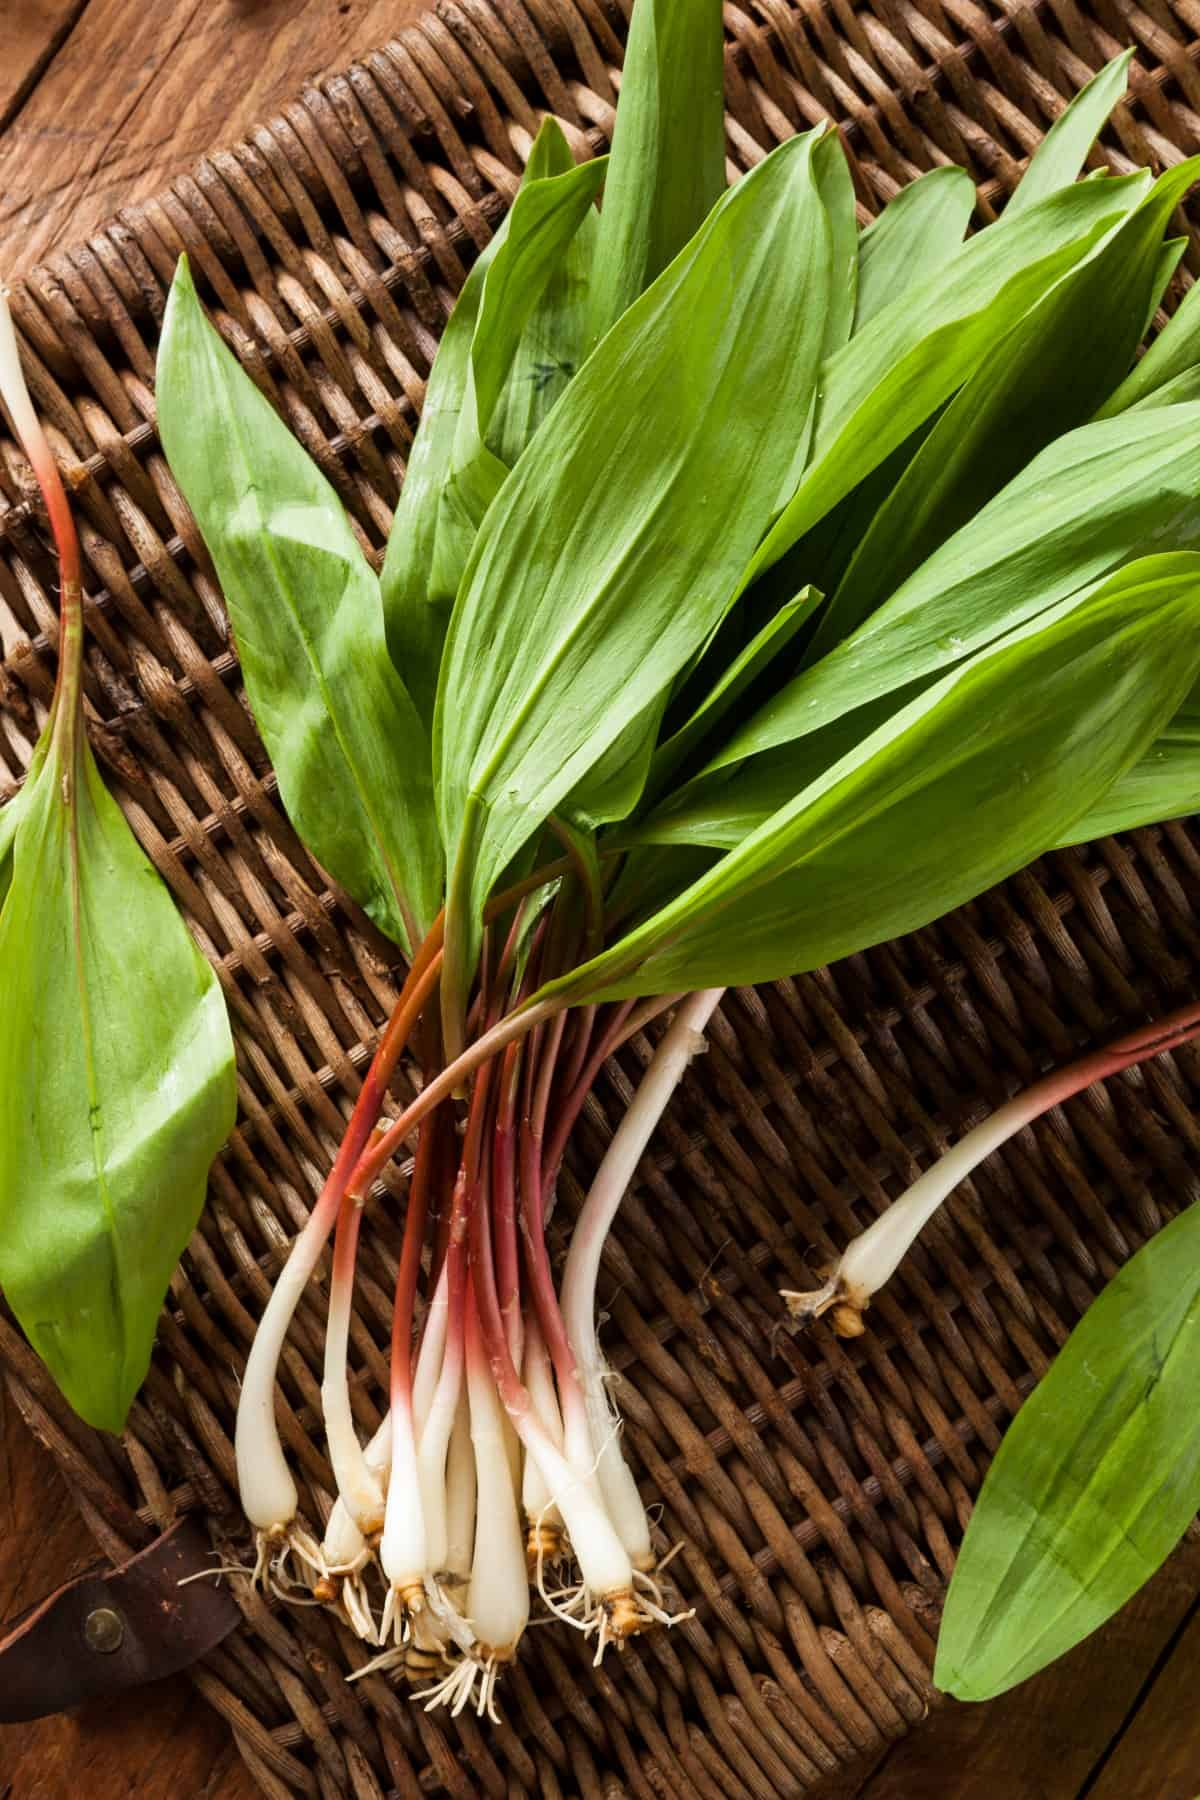 Raw Organic Green Spring Veggies Ramps Ready to Cook With on a wicker basket